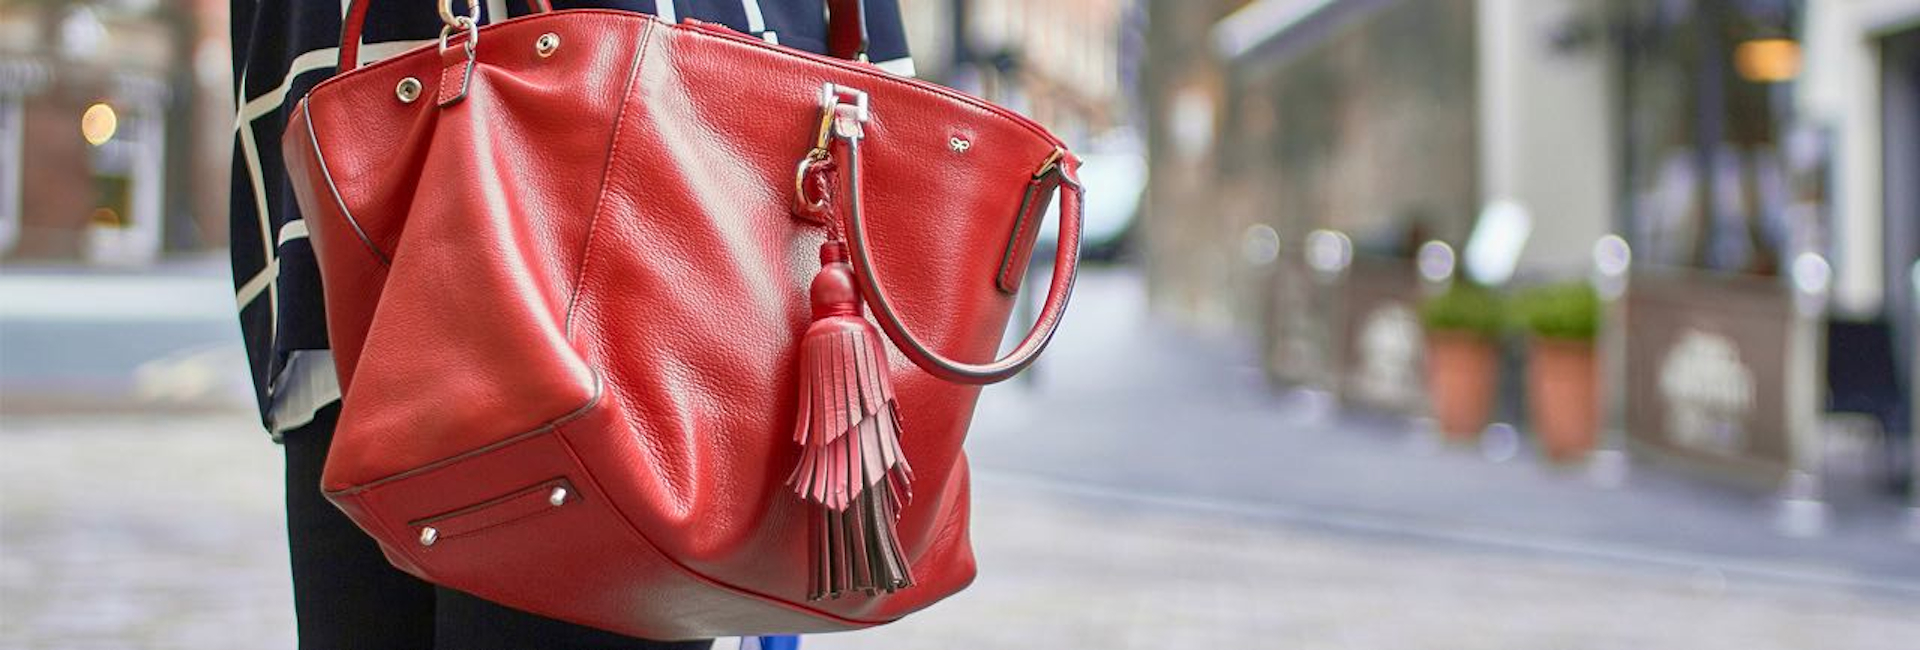 The story behind Red Handbag